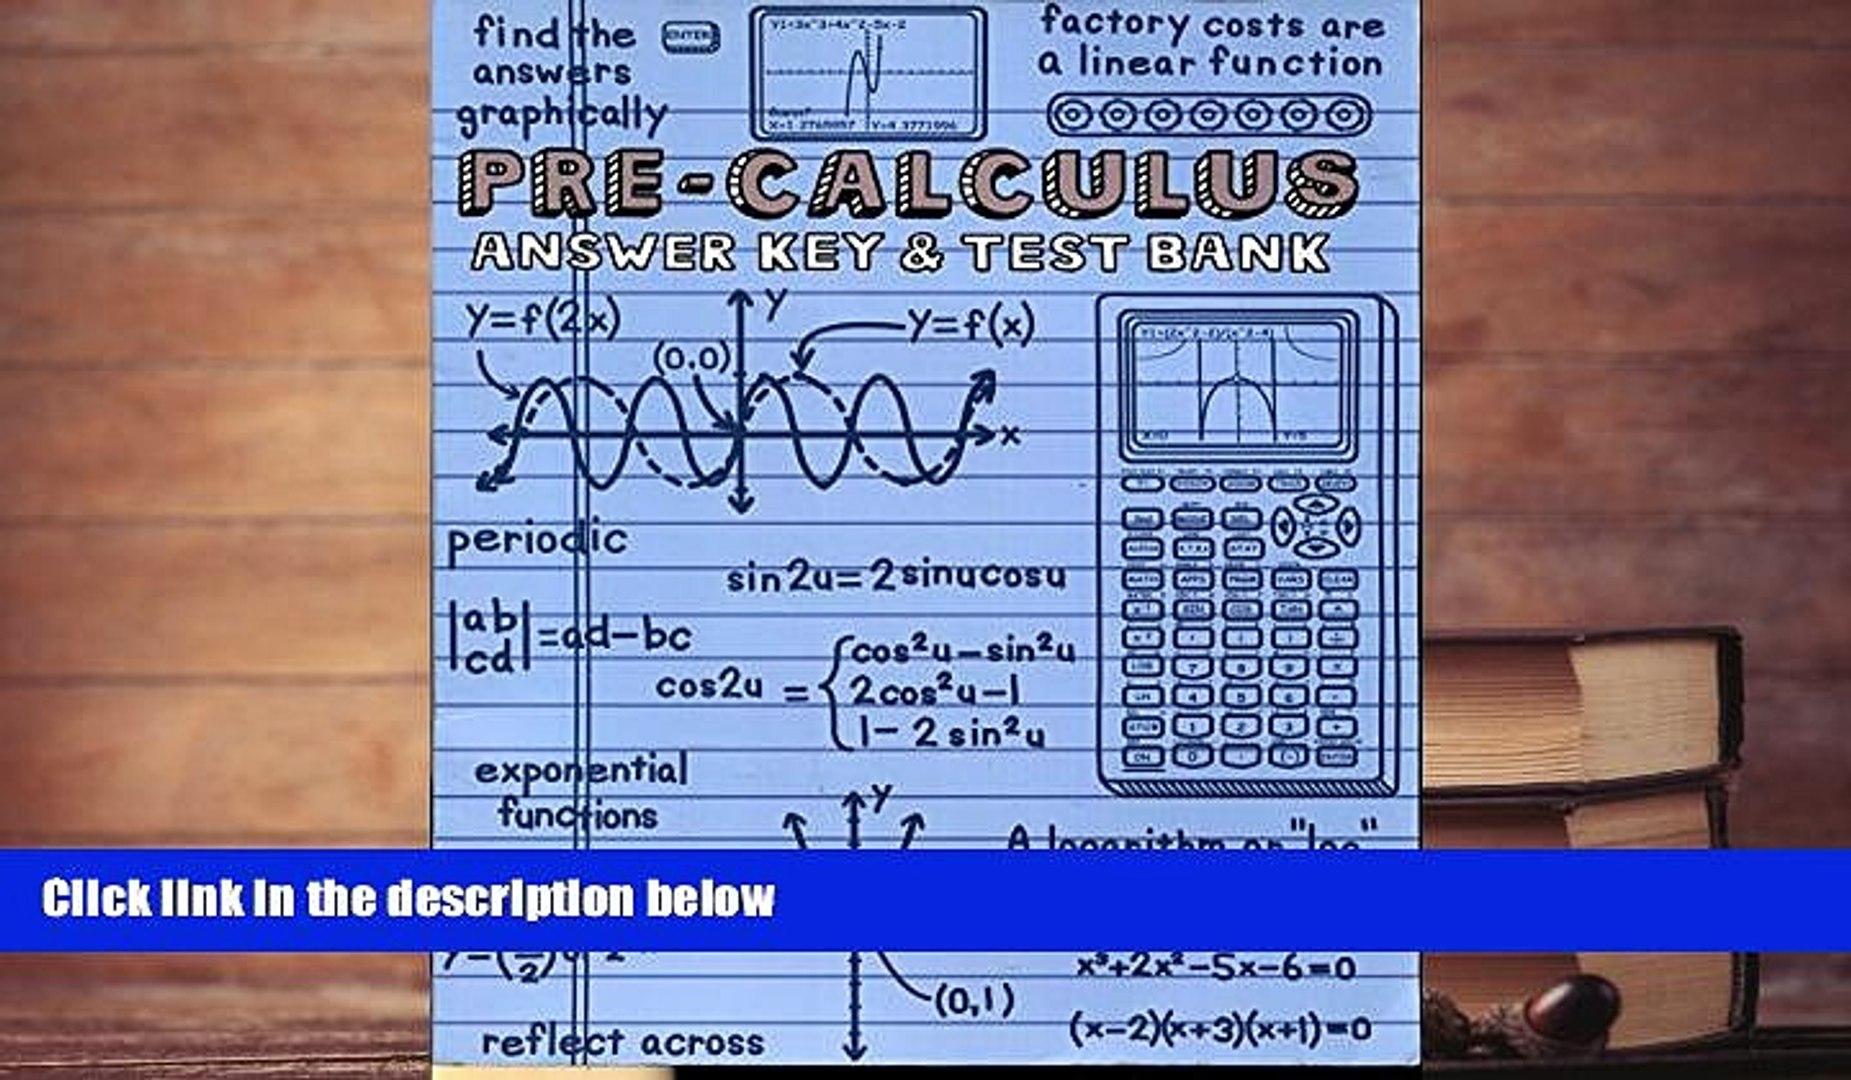 Download [PDF] A Teaching Text Books PRE Calculus Text Books And The Answer  Keys  Greg Sabouri